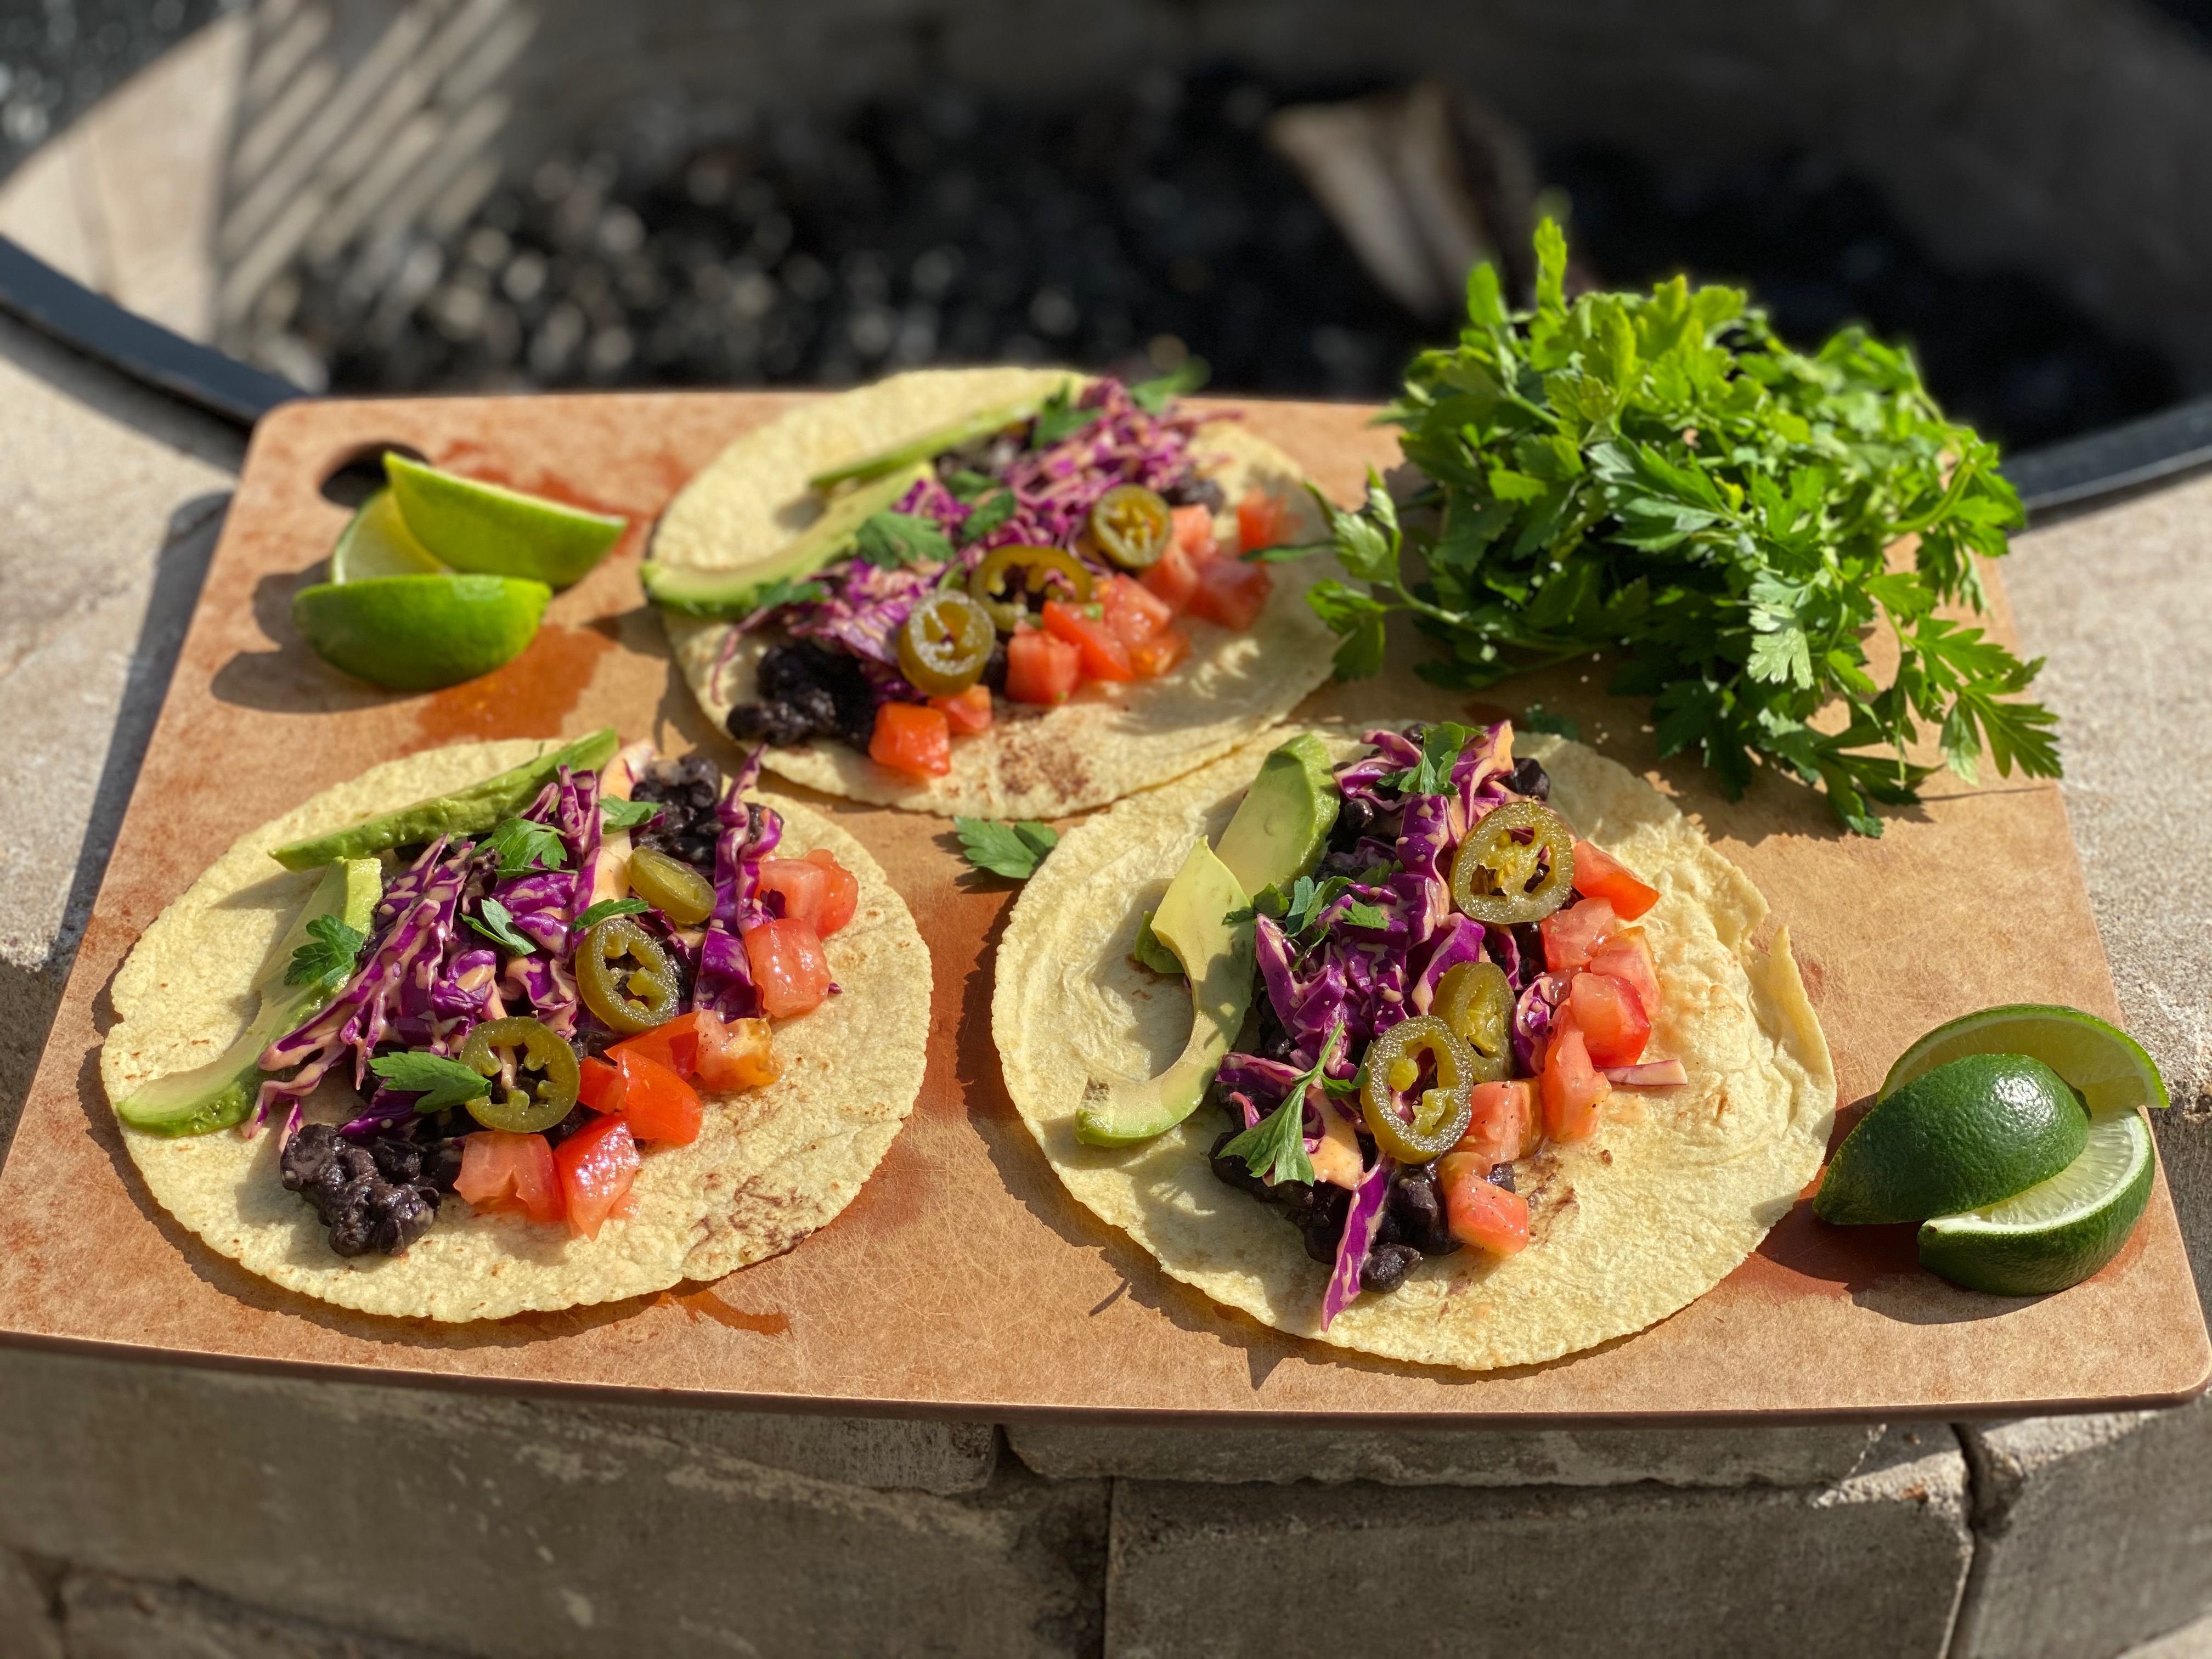 It's always a great time for vegan tacos! #organicmomma #organic #vegan #eatwithyoureyes